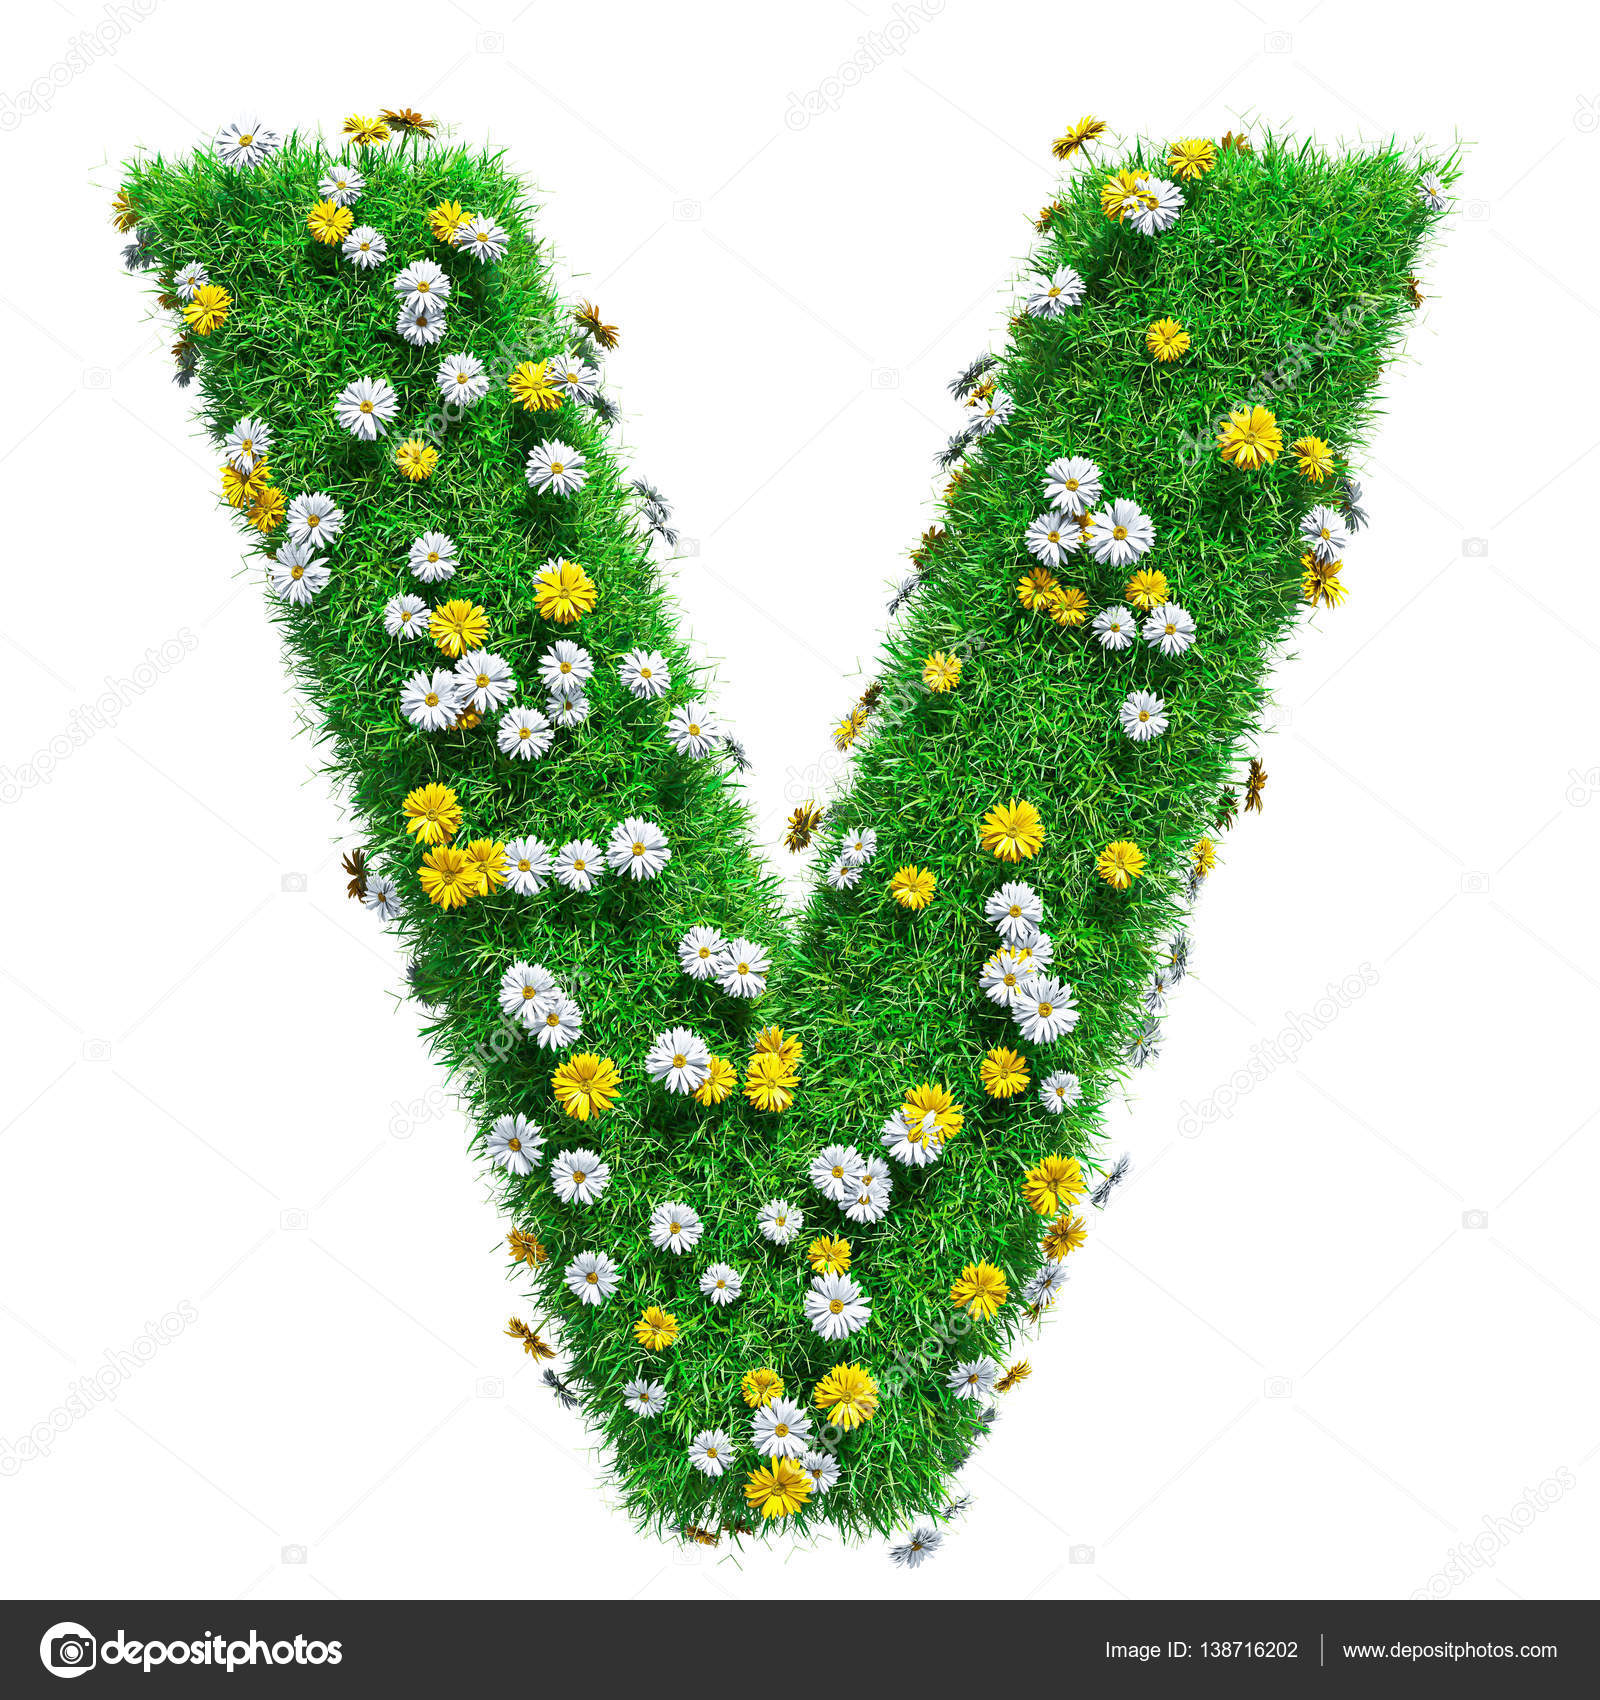 Letter v of green grass and flowers stock photo cherezoff 138716202 letter v of green grass and flowers stock photo thecheapjerseys Gallery